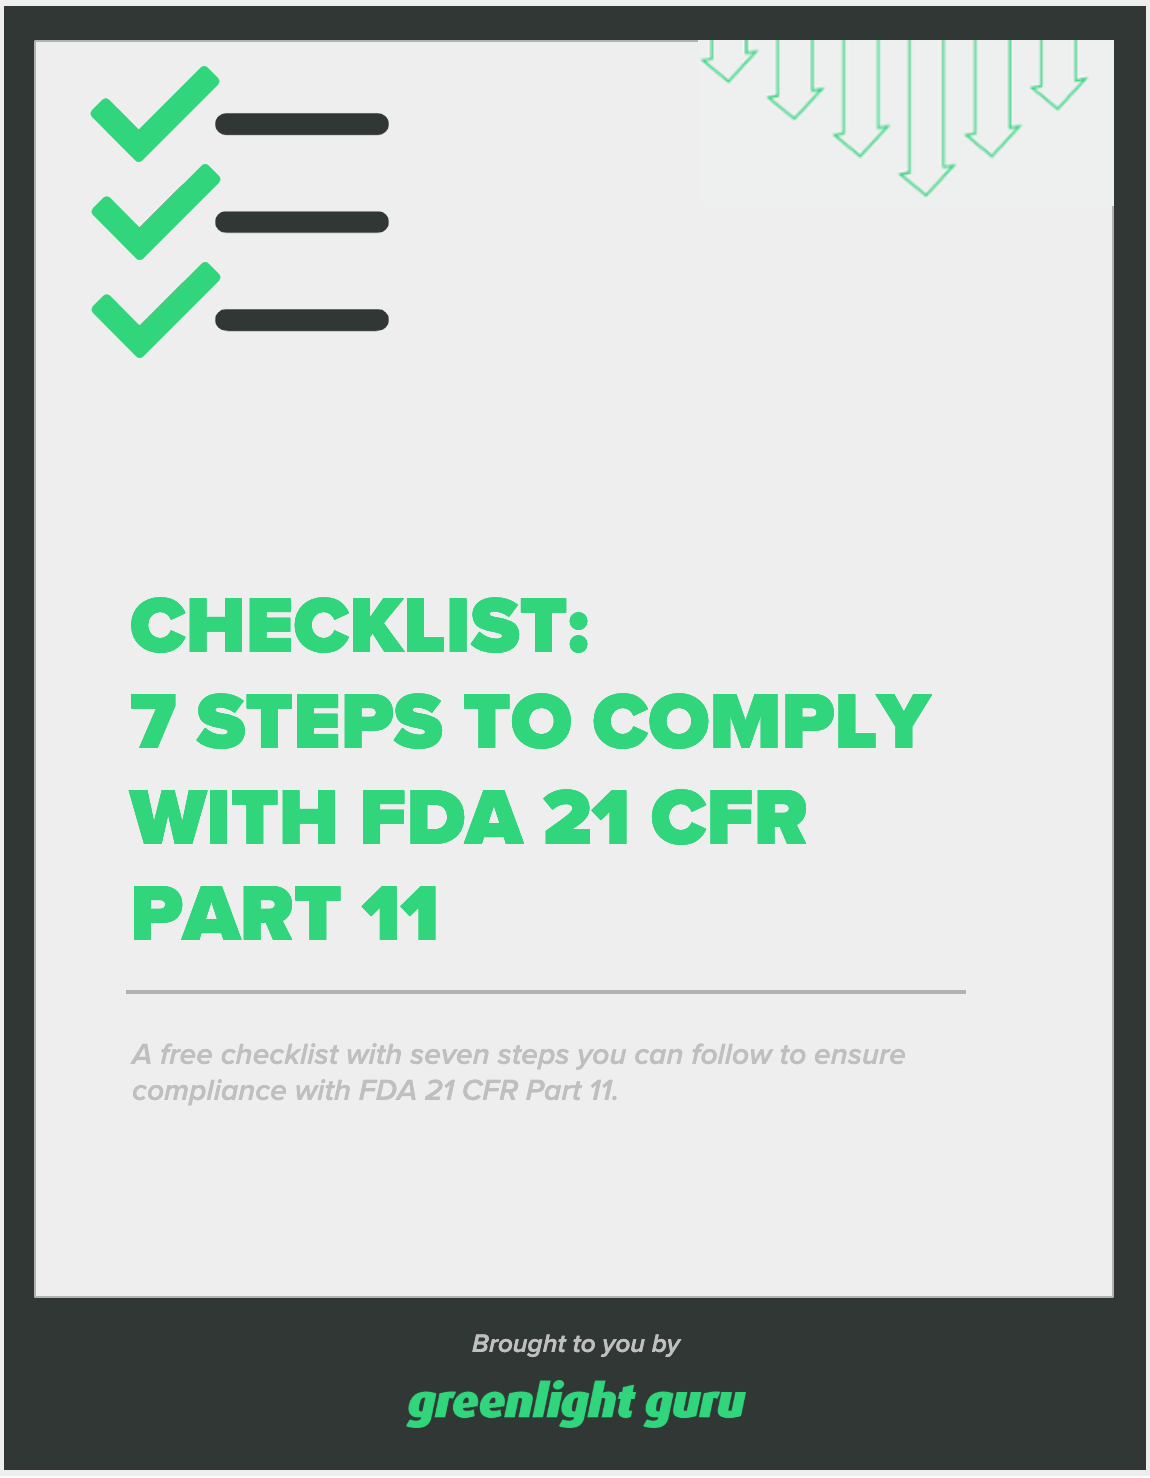 Checklist_7 Steps to Comply with FDA 21 CFR Part 11 - slide-in cover